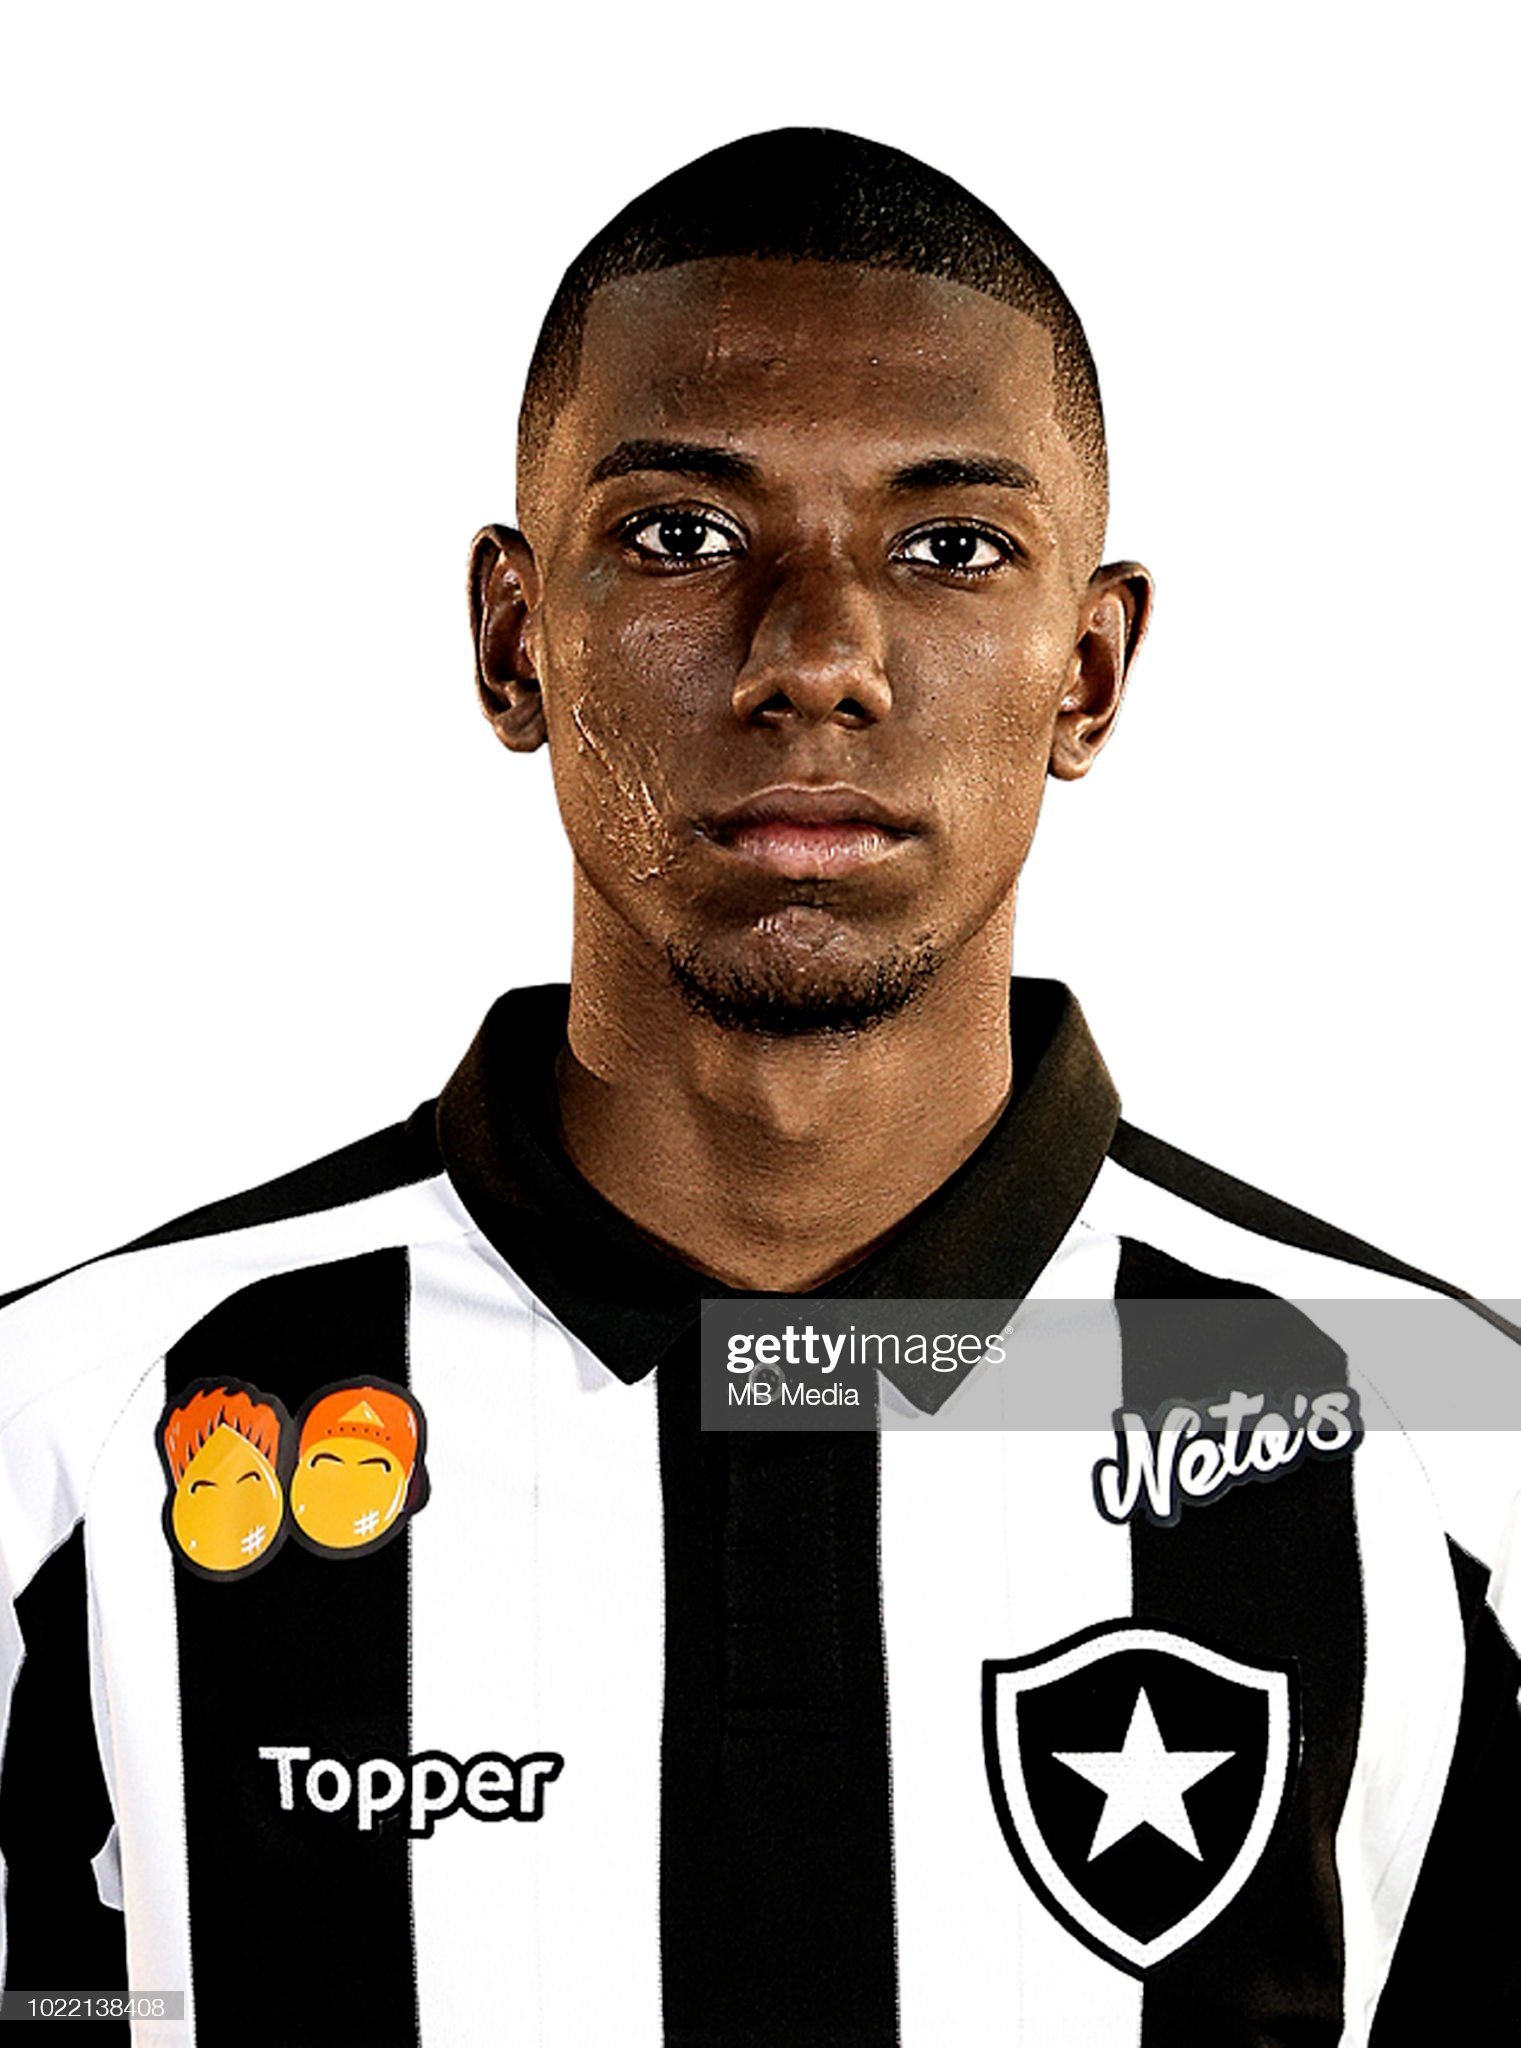 https://media.gettyimages.com/photos/brazilian-football-league-serie-a-2018-n-nvictor-hugo-soares-dos-picture-id1022138408?s=2048x2048